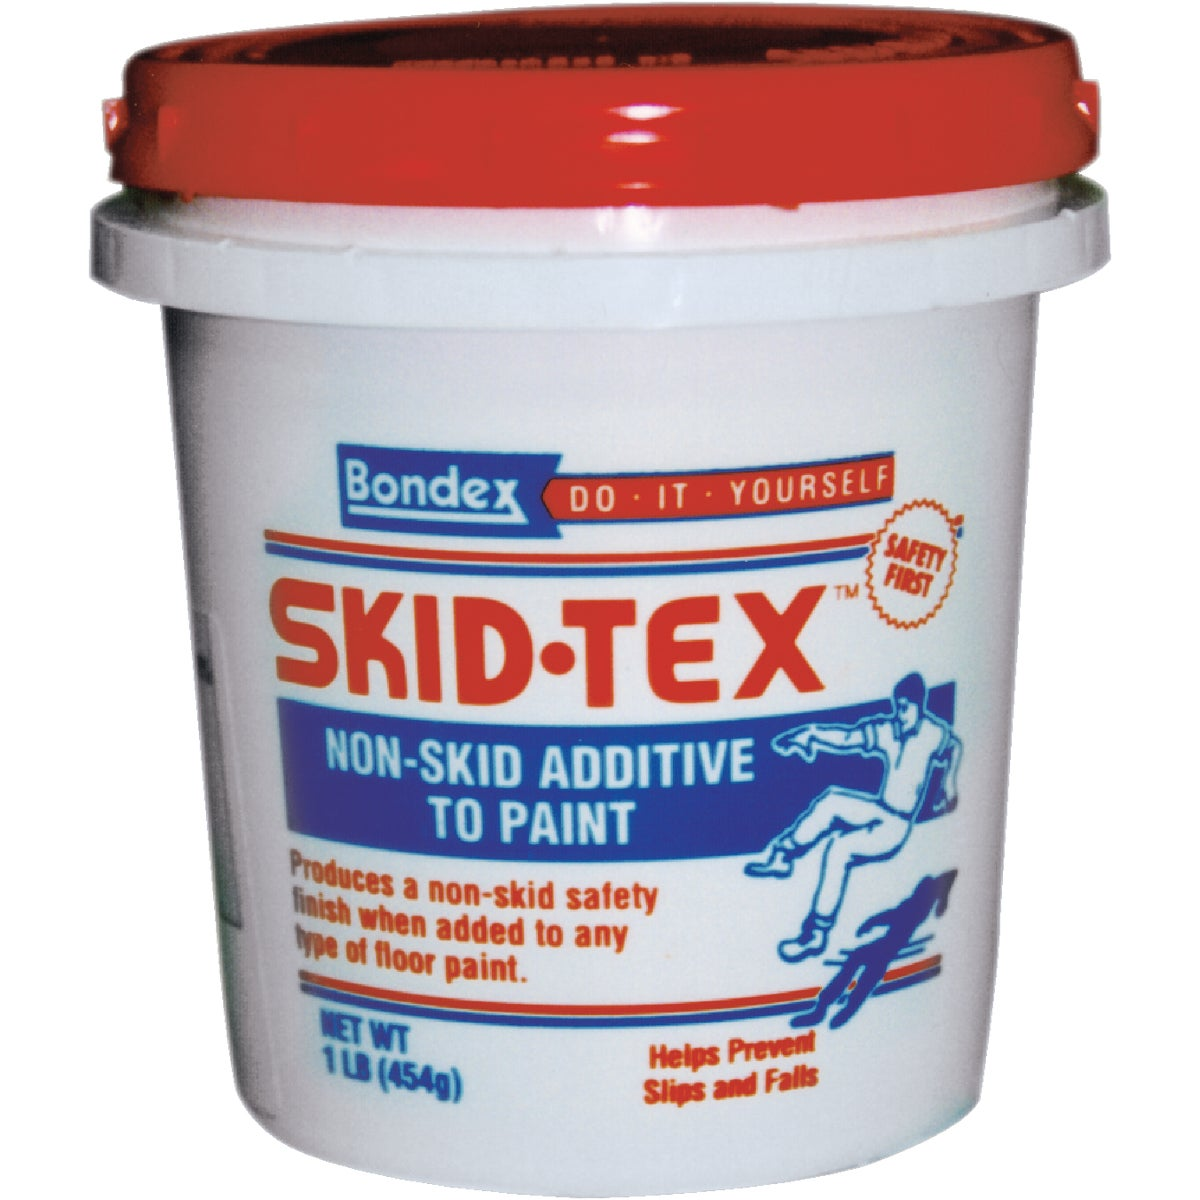 NONSKID PAINT ADDITIVE